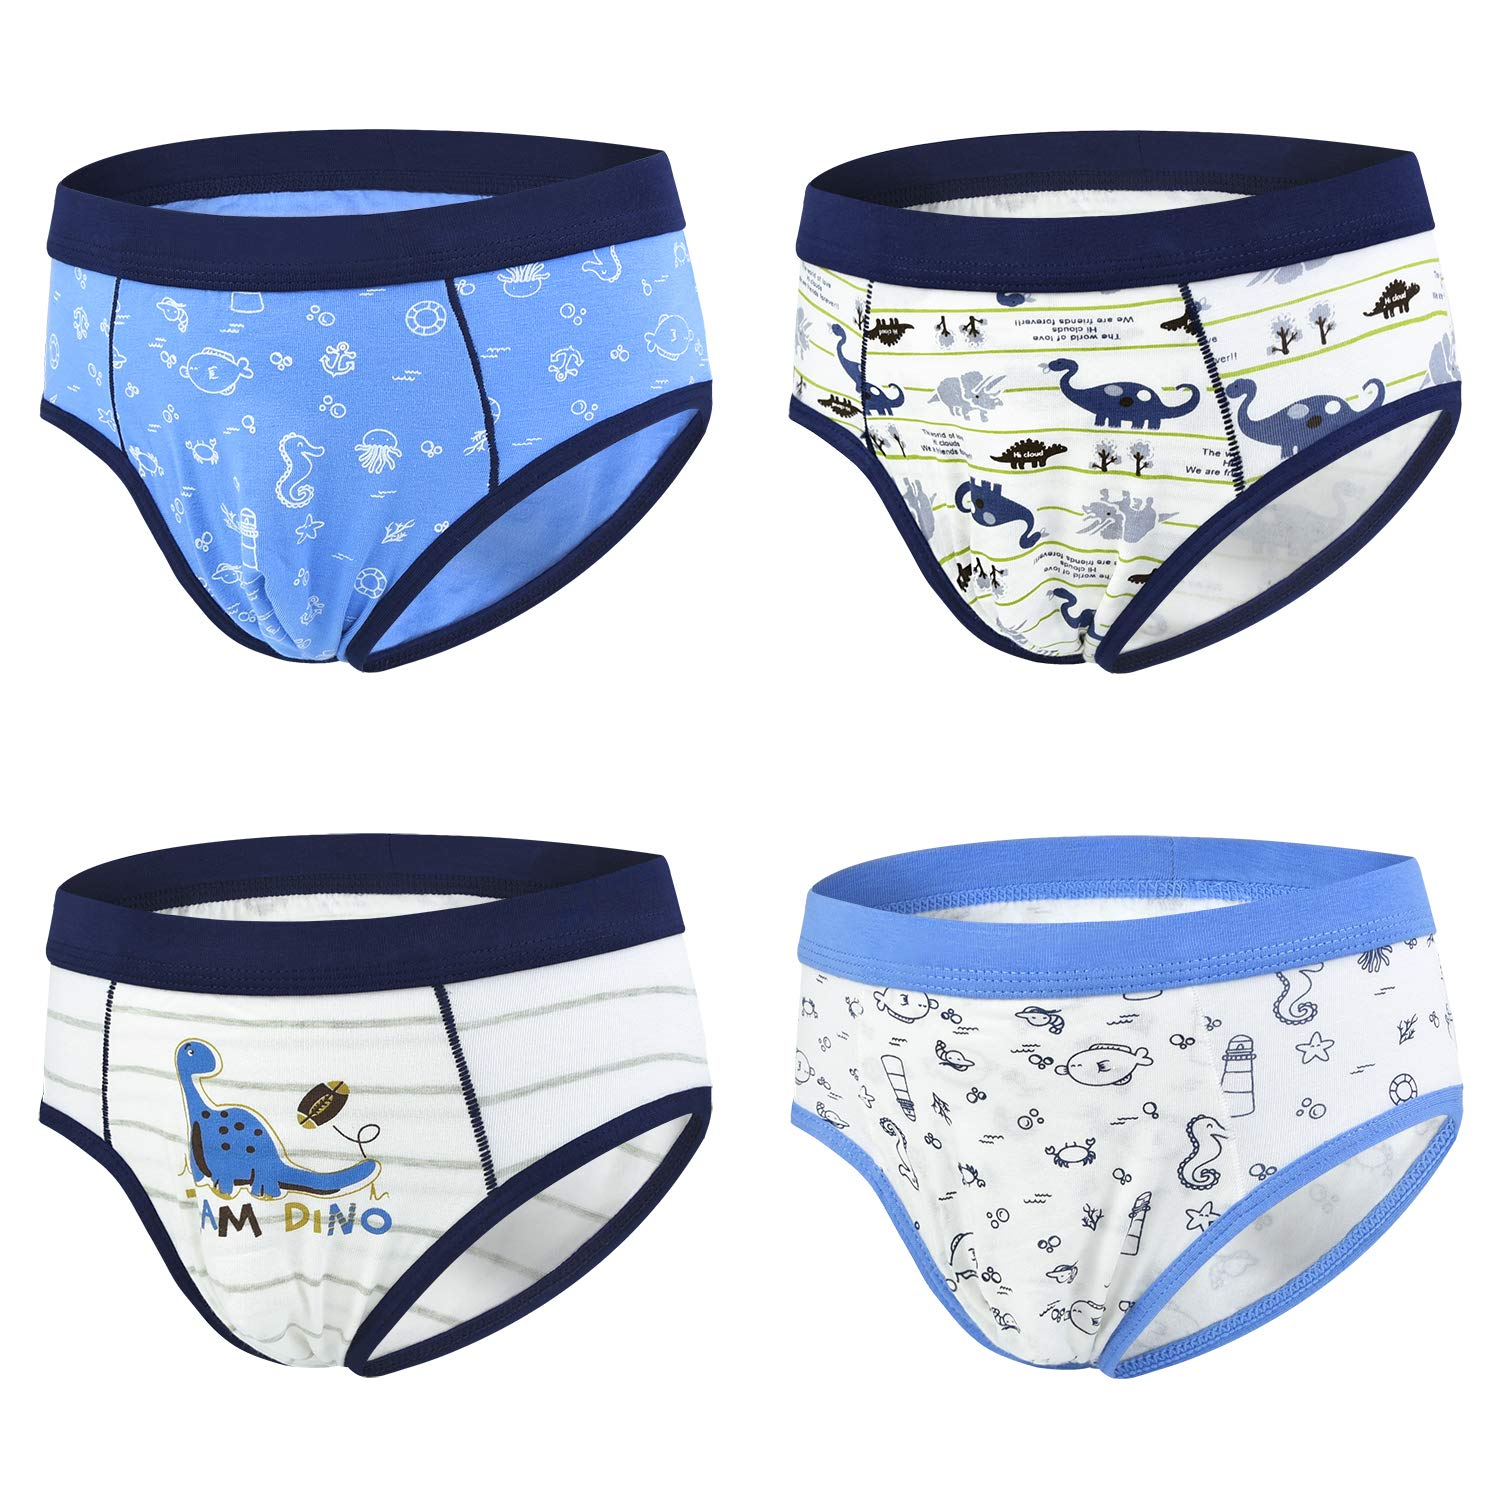 slaixiu Cotton Little Boys Briefs Cartoon Dinosaur Truck Kids Underwear 4-Pack (UWAA-No.1-120)